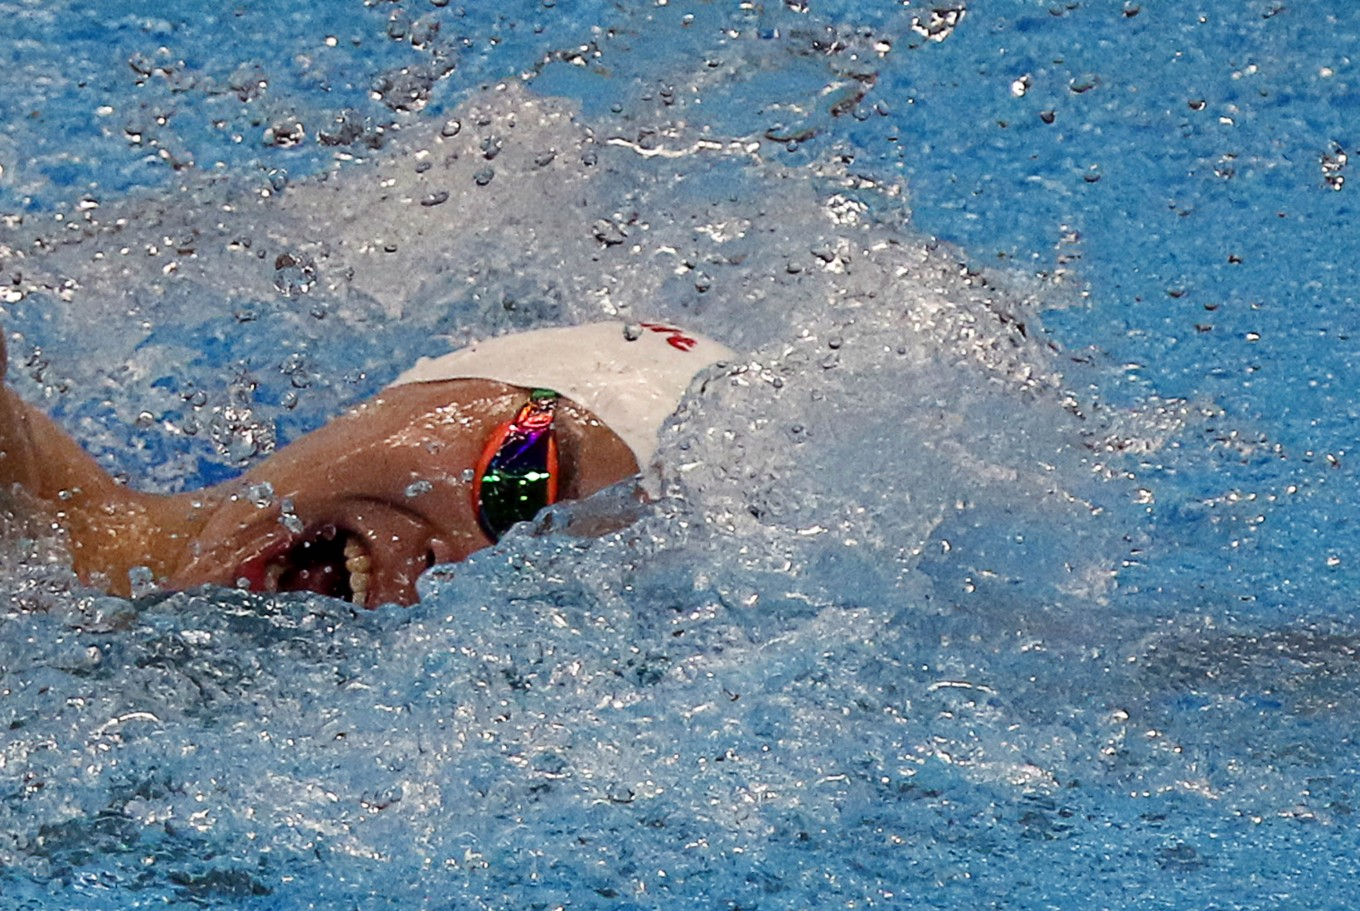 China's Sun Yang swims in men's 800-meter freestyle. He won the gold after finishing in 7:48.36, breaking the Asian Games record. JP/Seto Wardhana